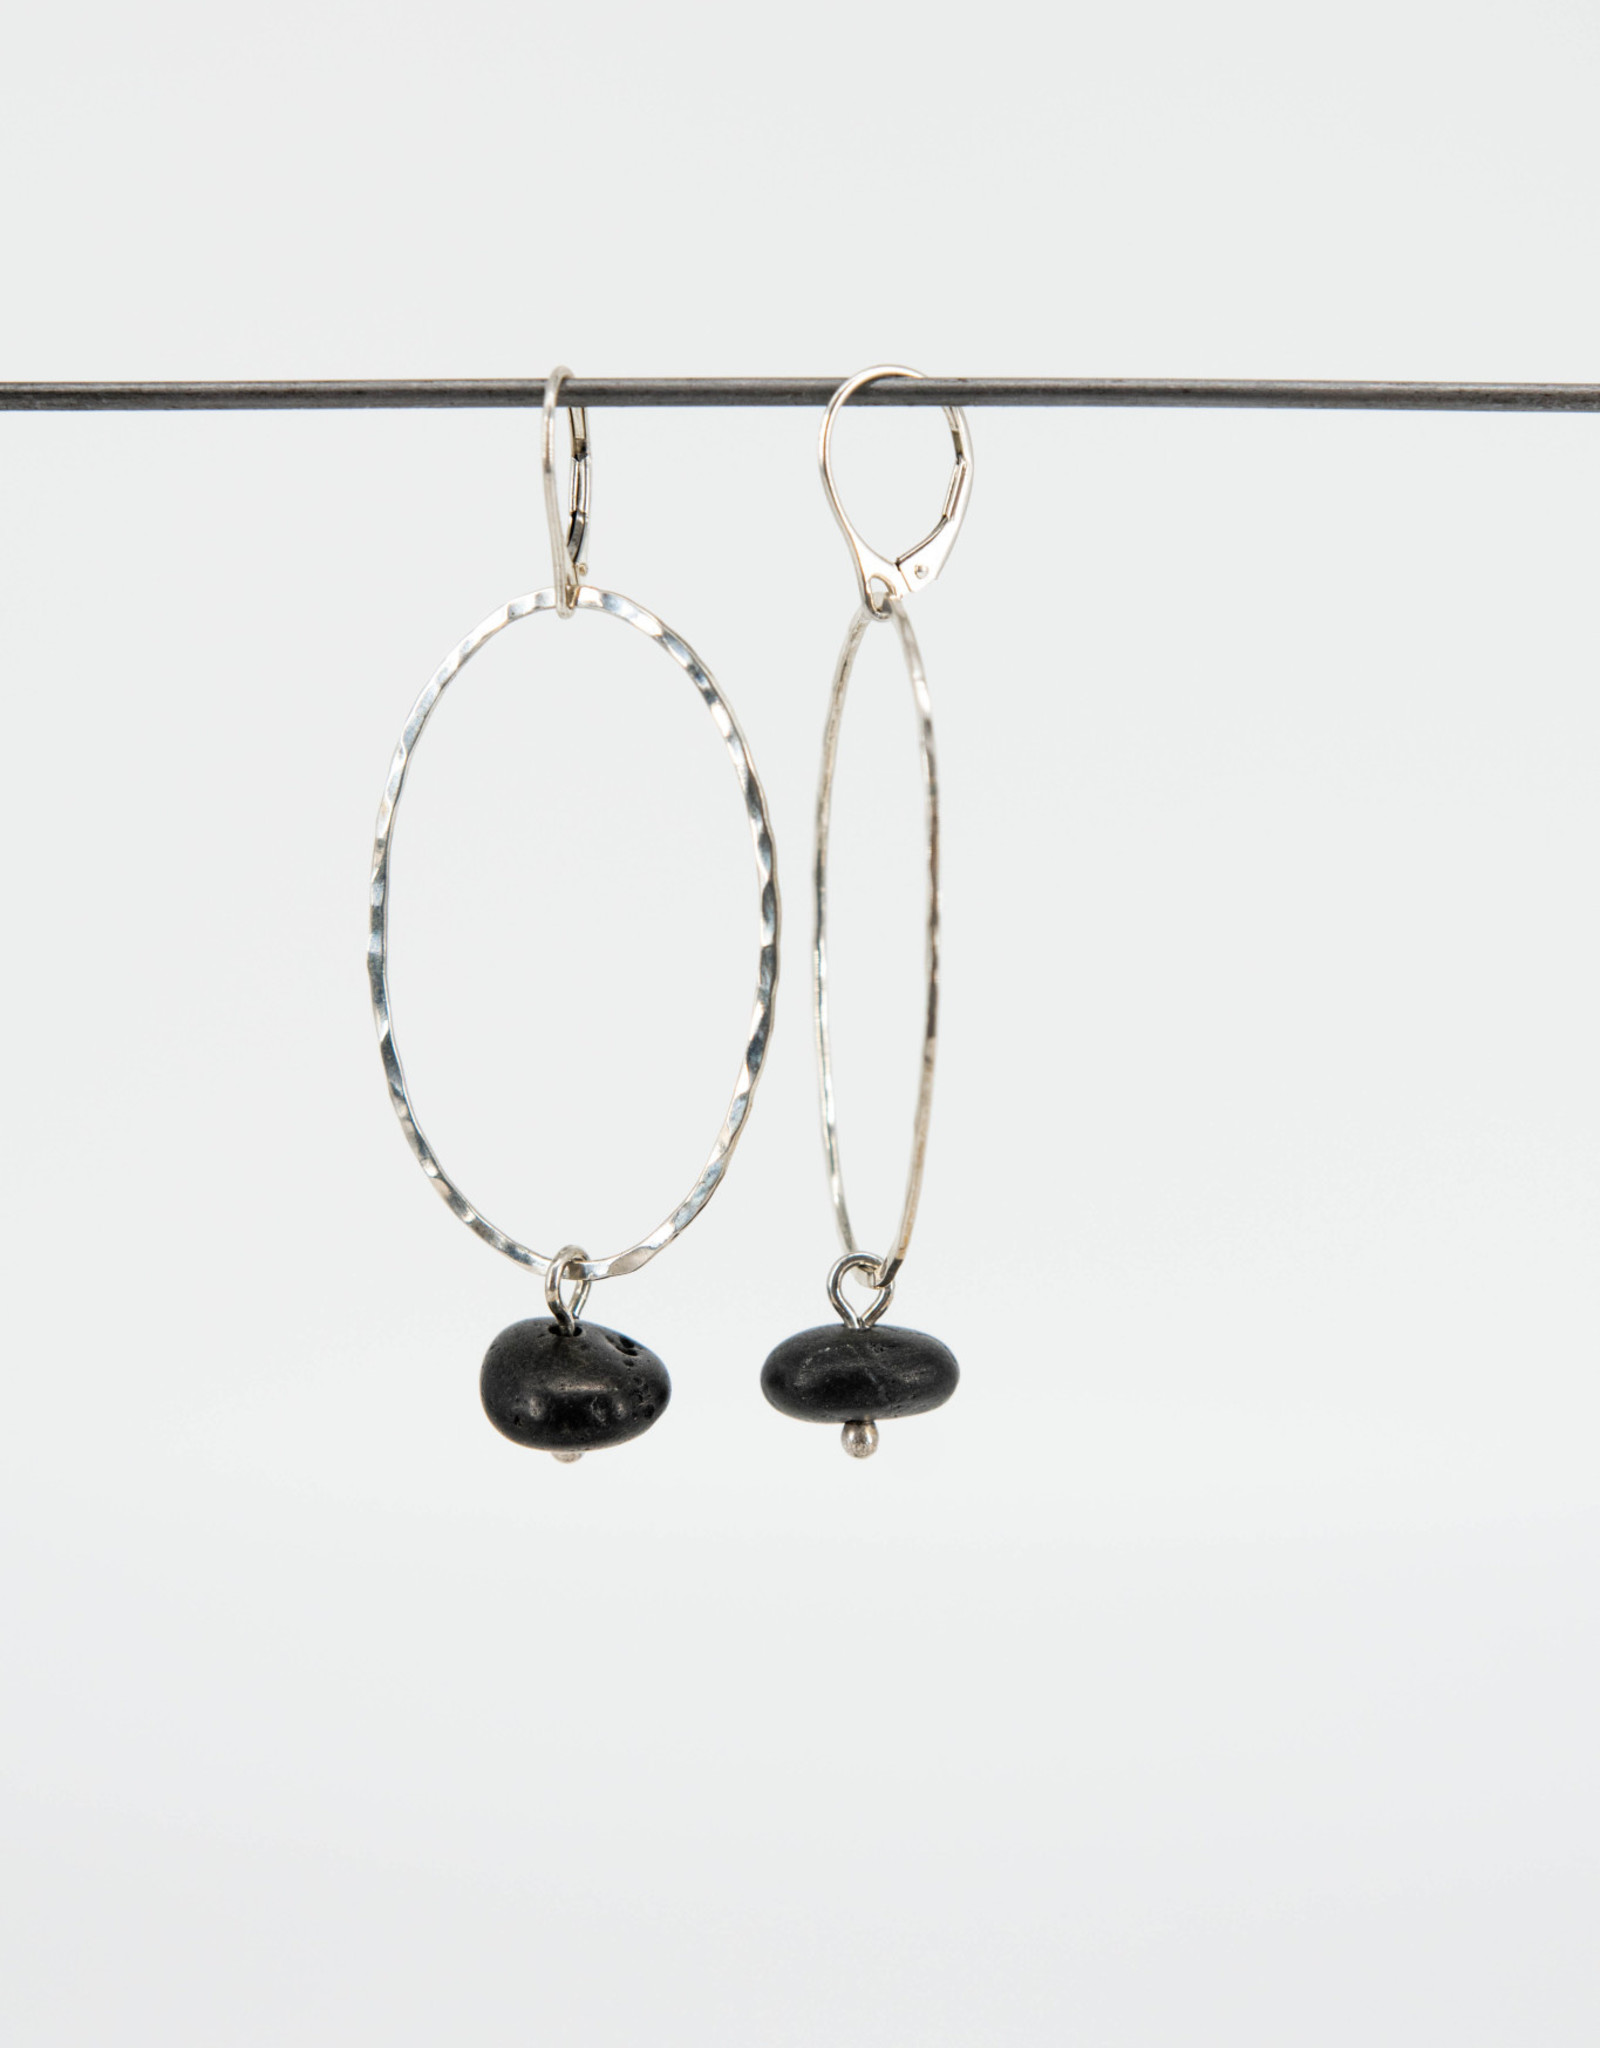 EARRING STONE ON LONG EARWIRE AND ROUND DROP CROP CIRCLES